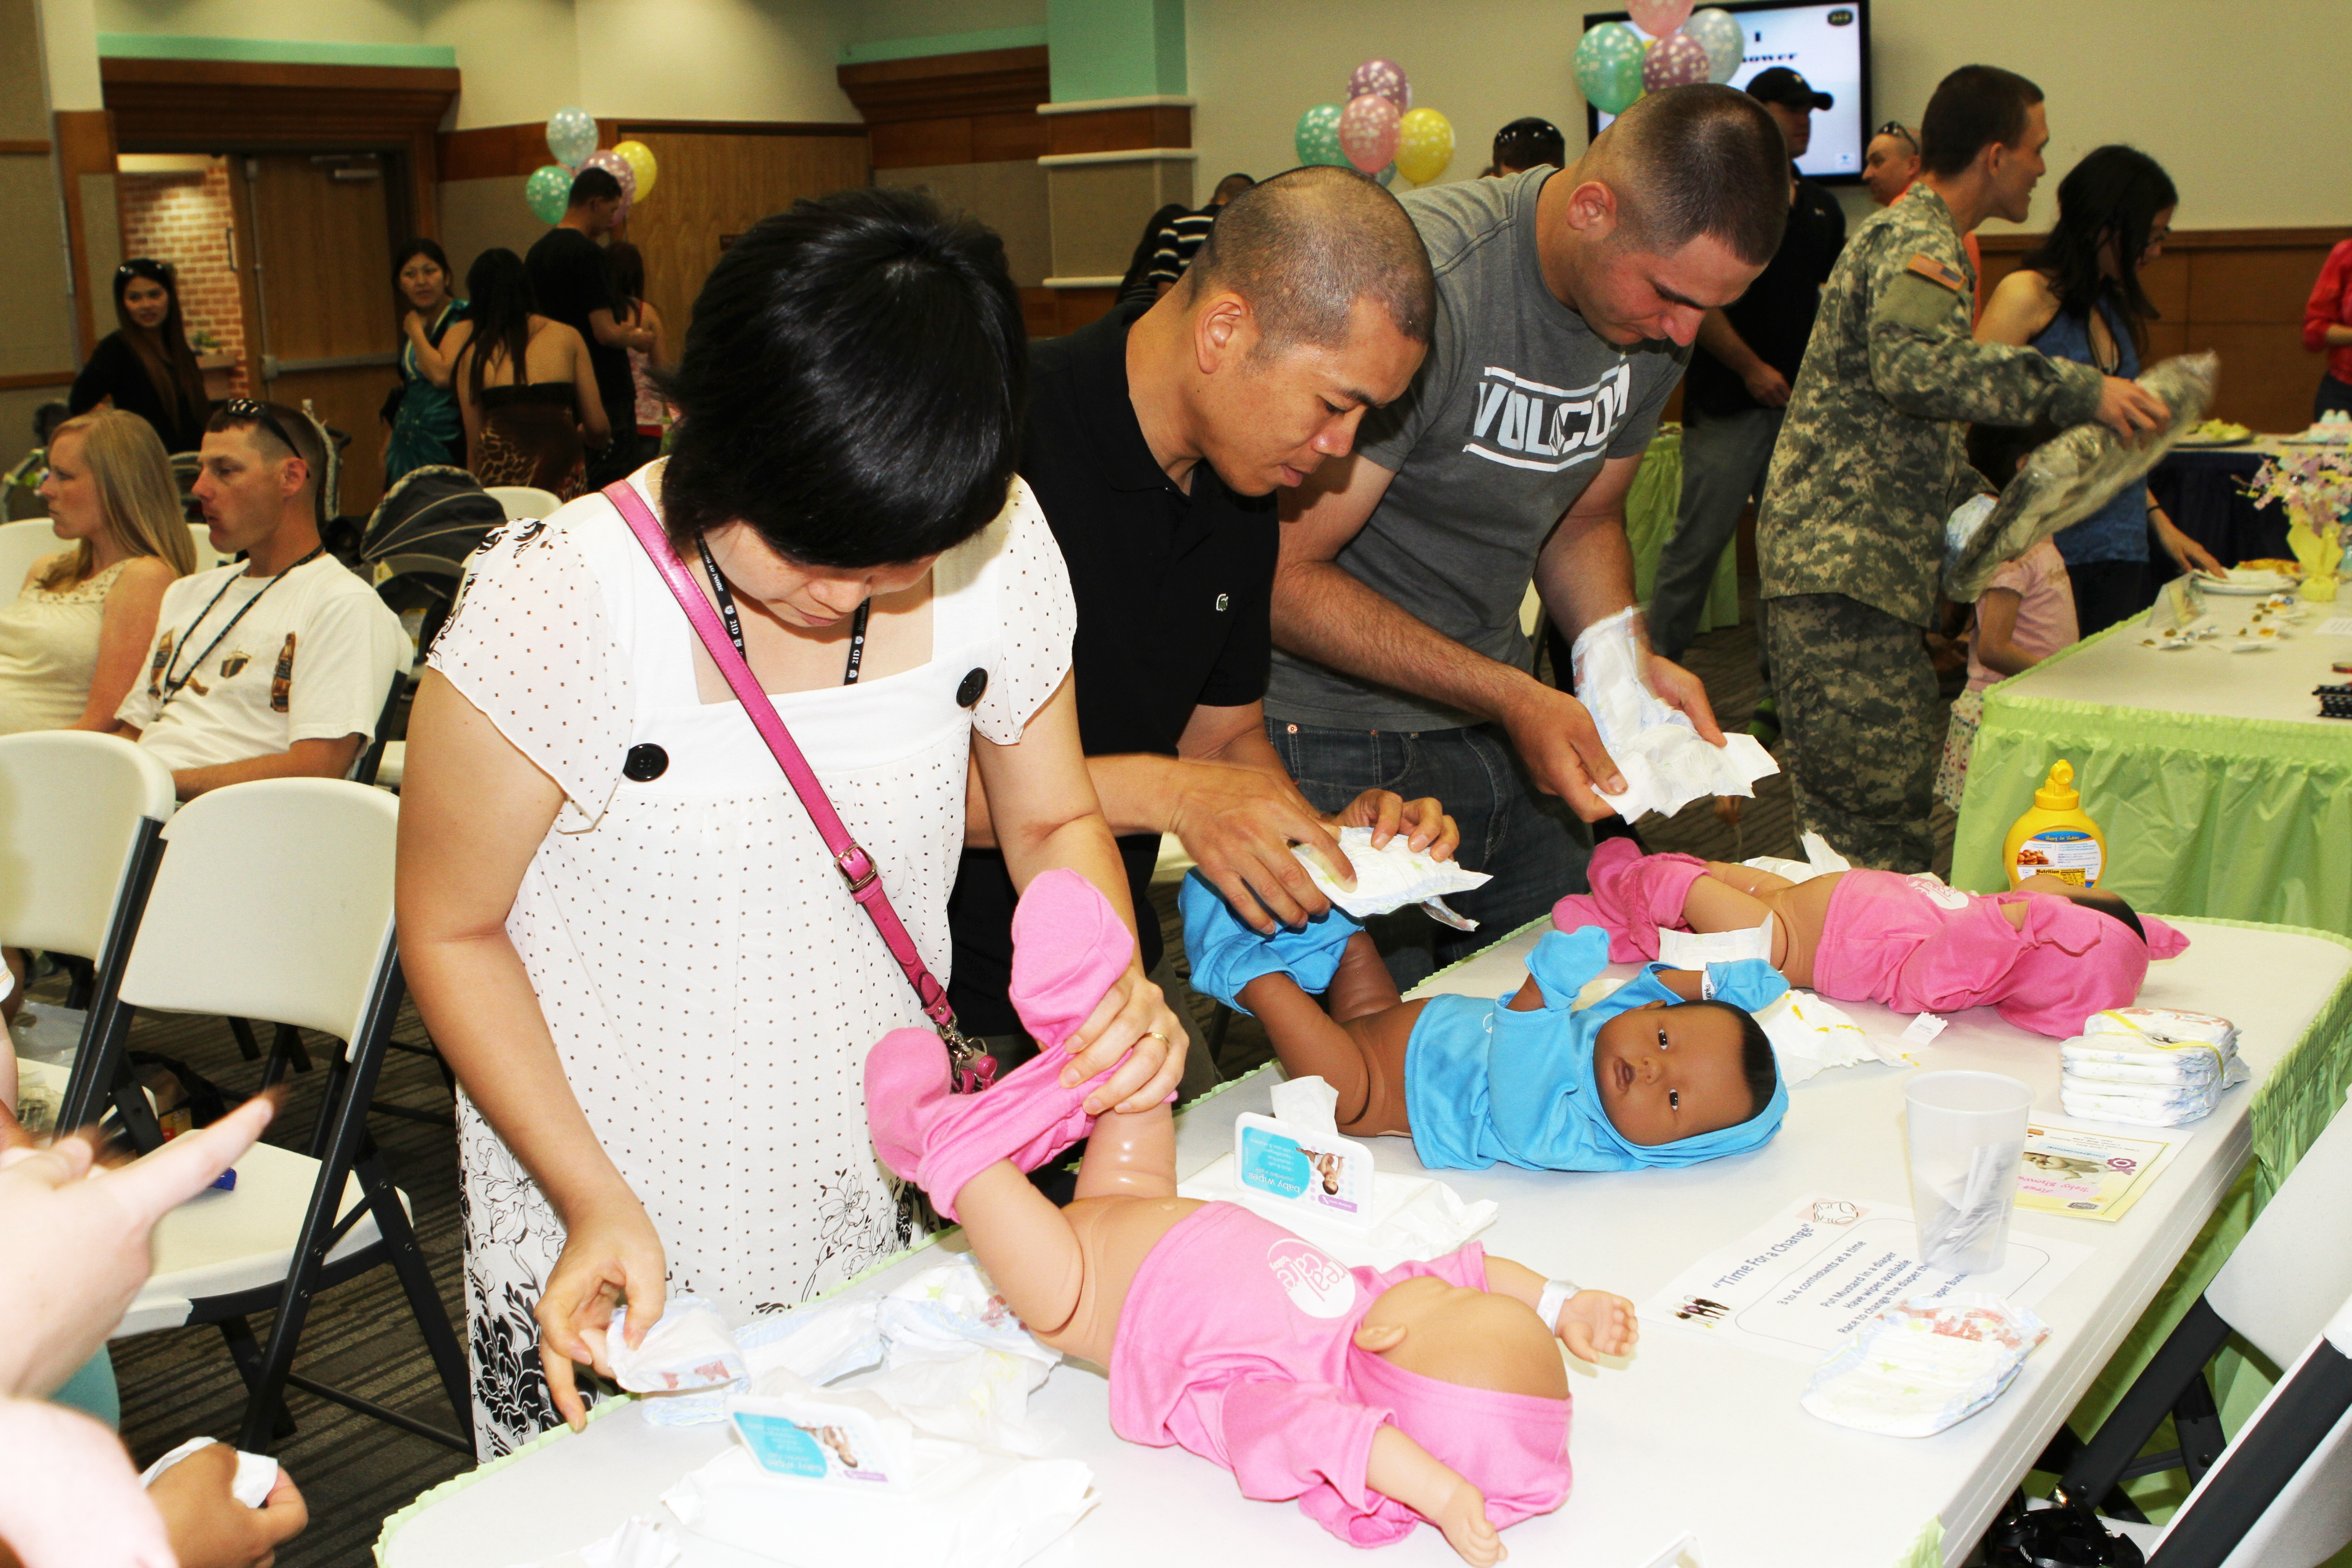 Baby shower introduces dads to diapers Article